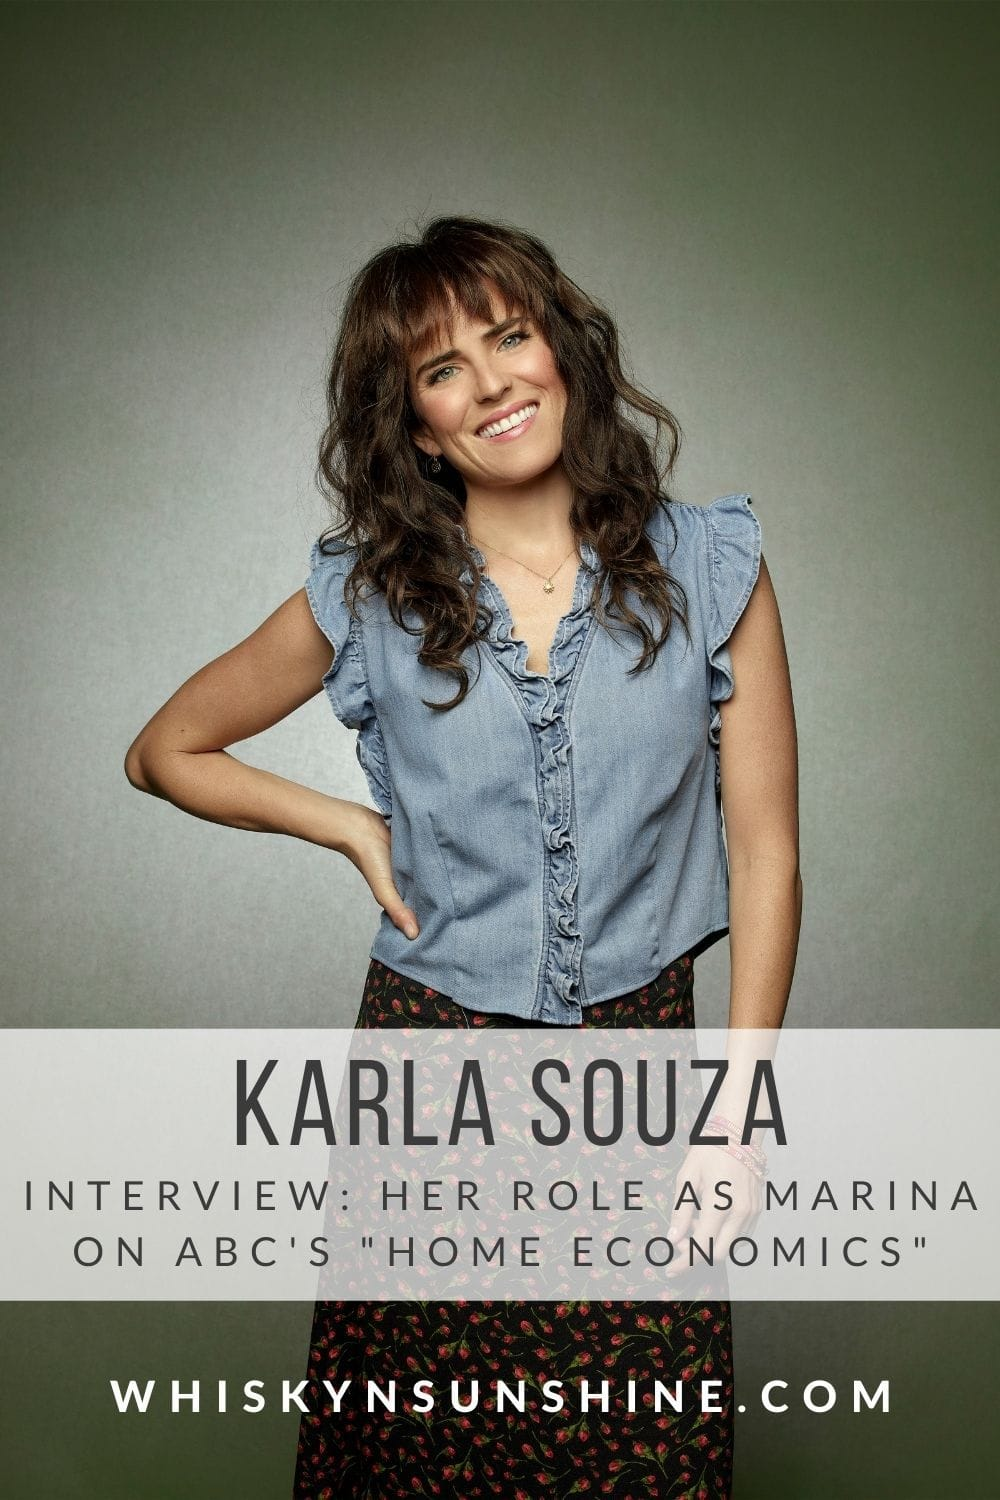 interview with karla souza